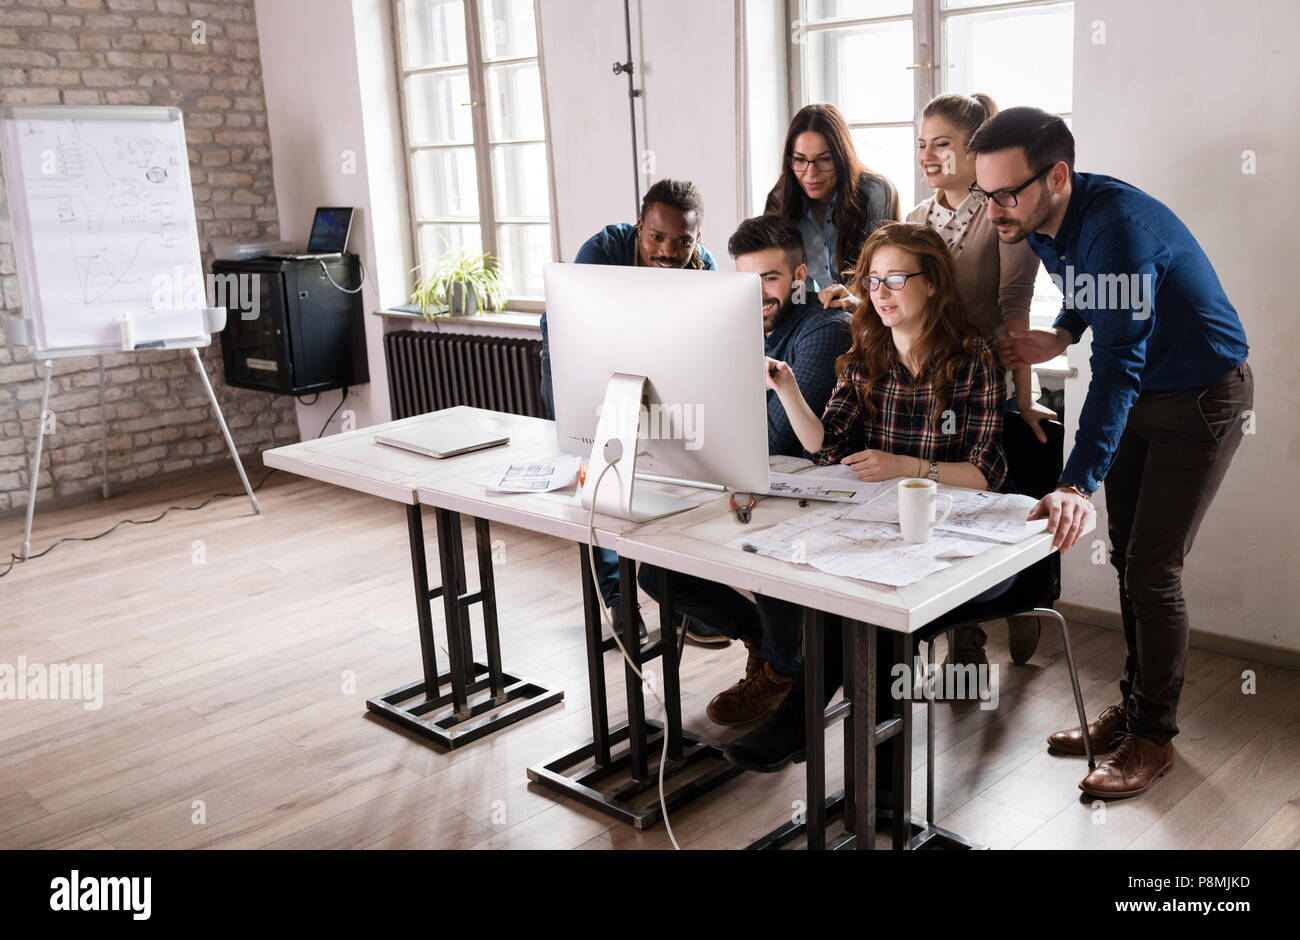 Young architects working on project in office Stock Photo